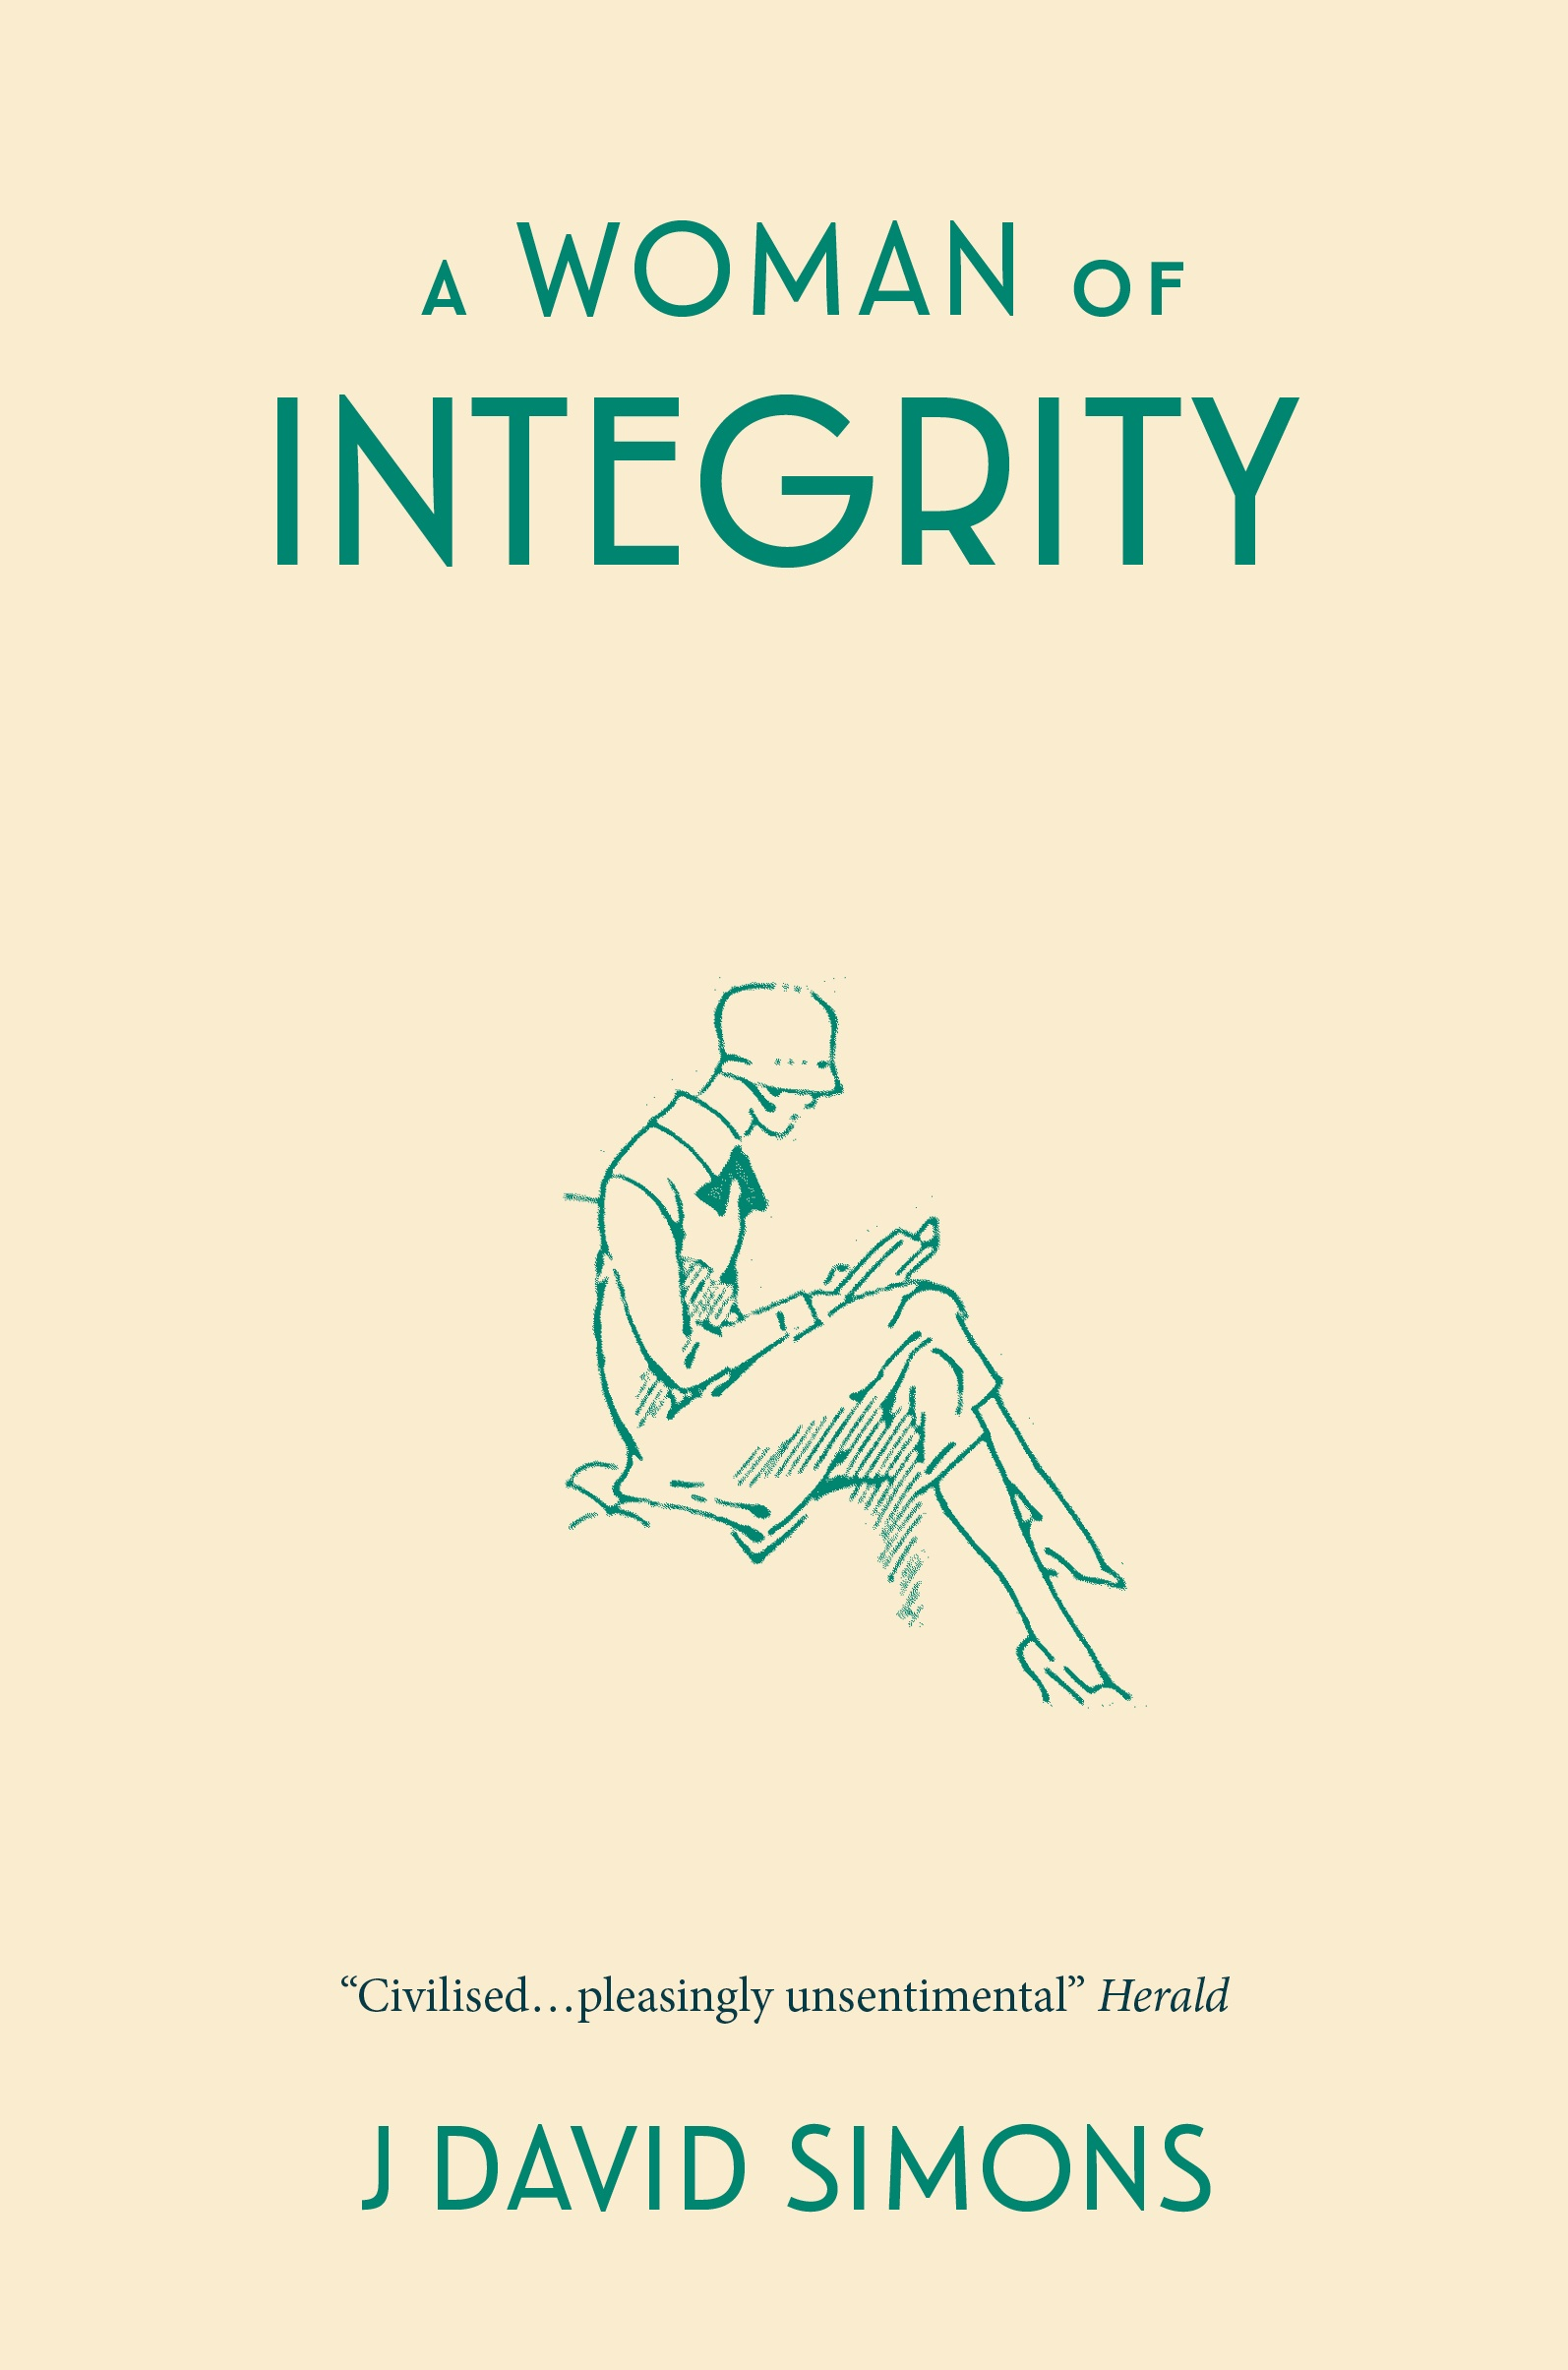 A Woman of Integrity